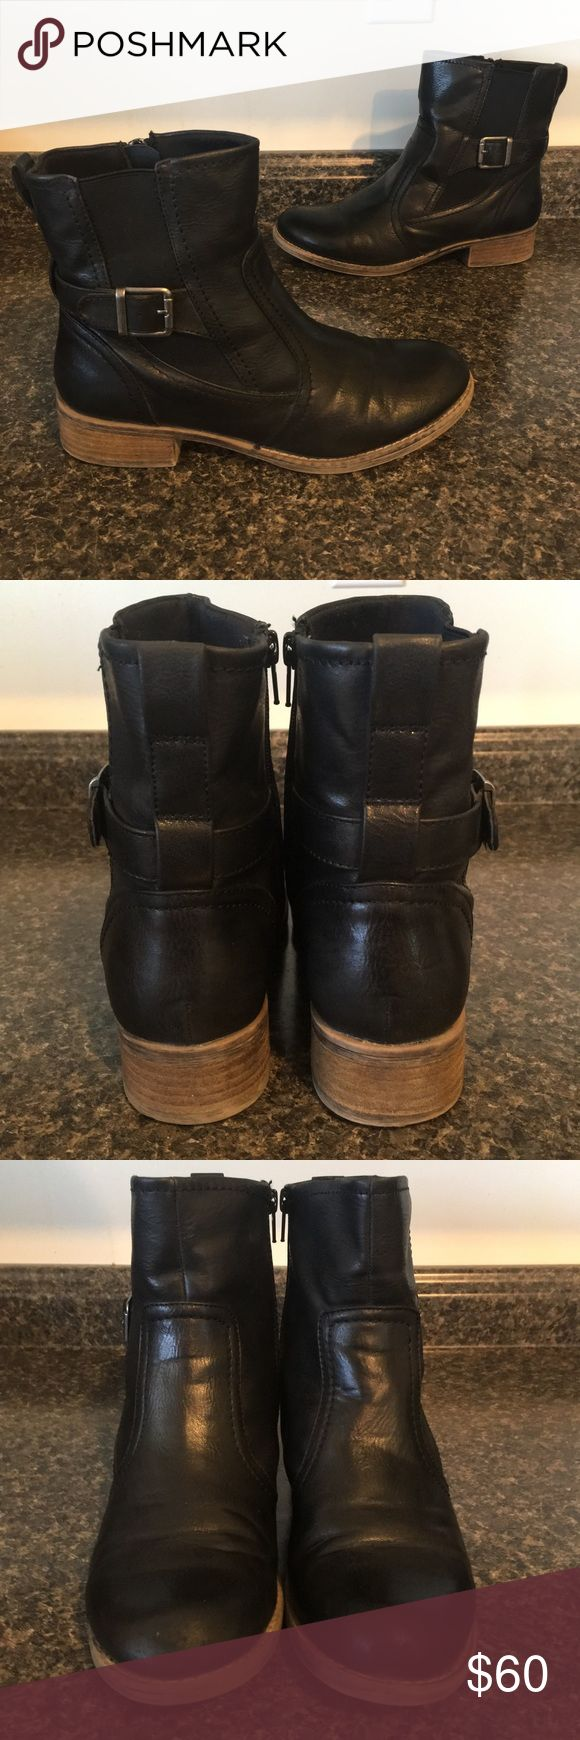 BARETRAPS Leather Distressed Wide Ankle Boots Excellent Preowned Condition with light wear showing on the toes ❤️ Women's Size 9 Wide BareTraps Shoes Ankle Boots & Booties